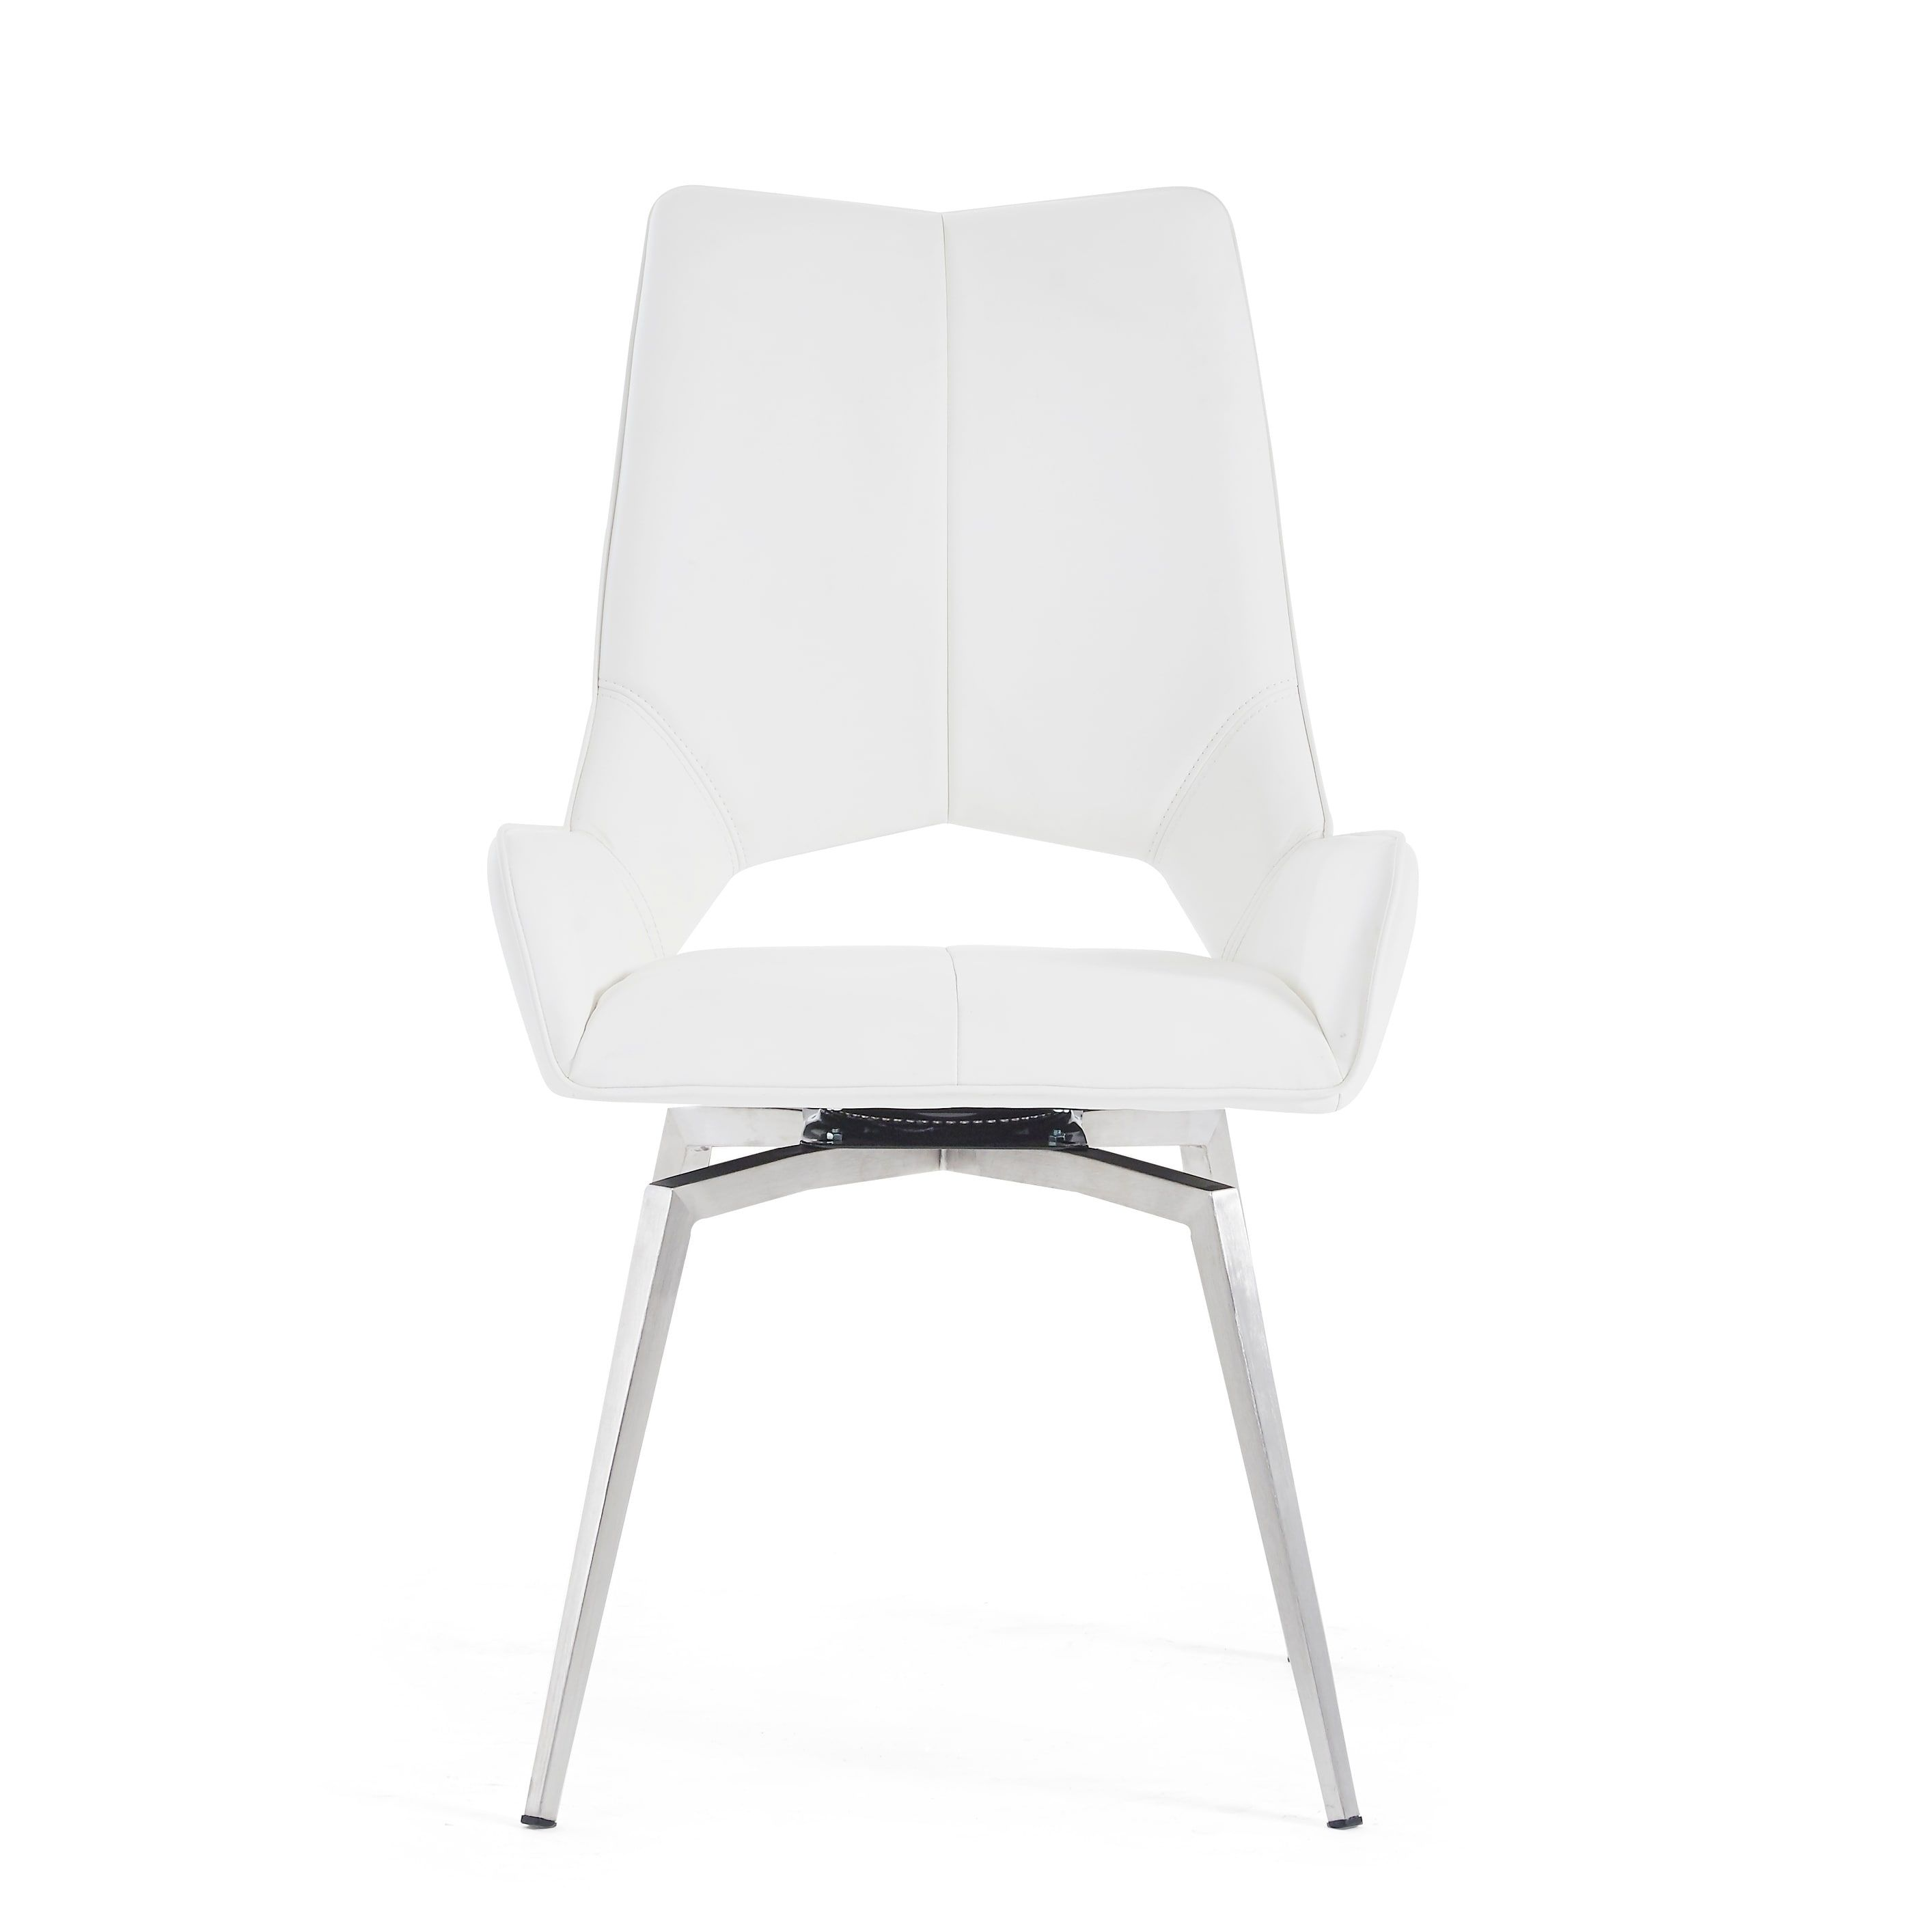 Amazing White Faux Leather Bucket Style Dining Chair Foam Bralicious Painted Fabric Chair Ideas Braliciousco